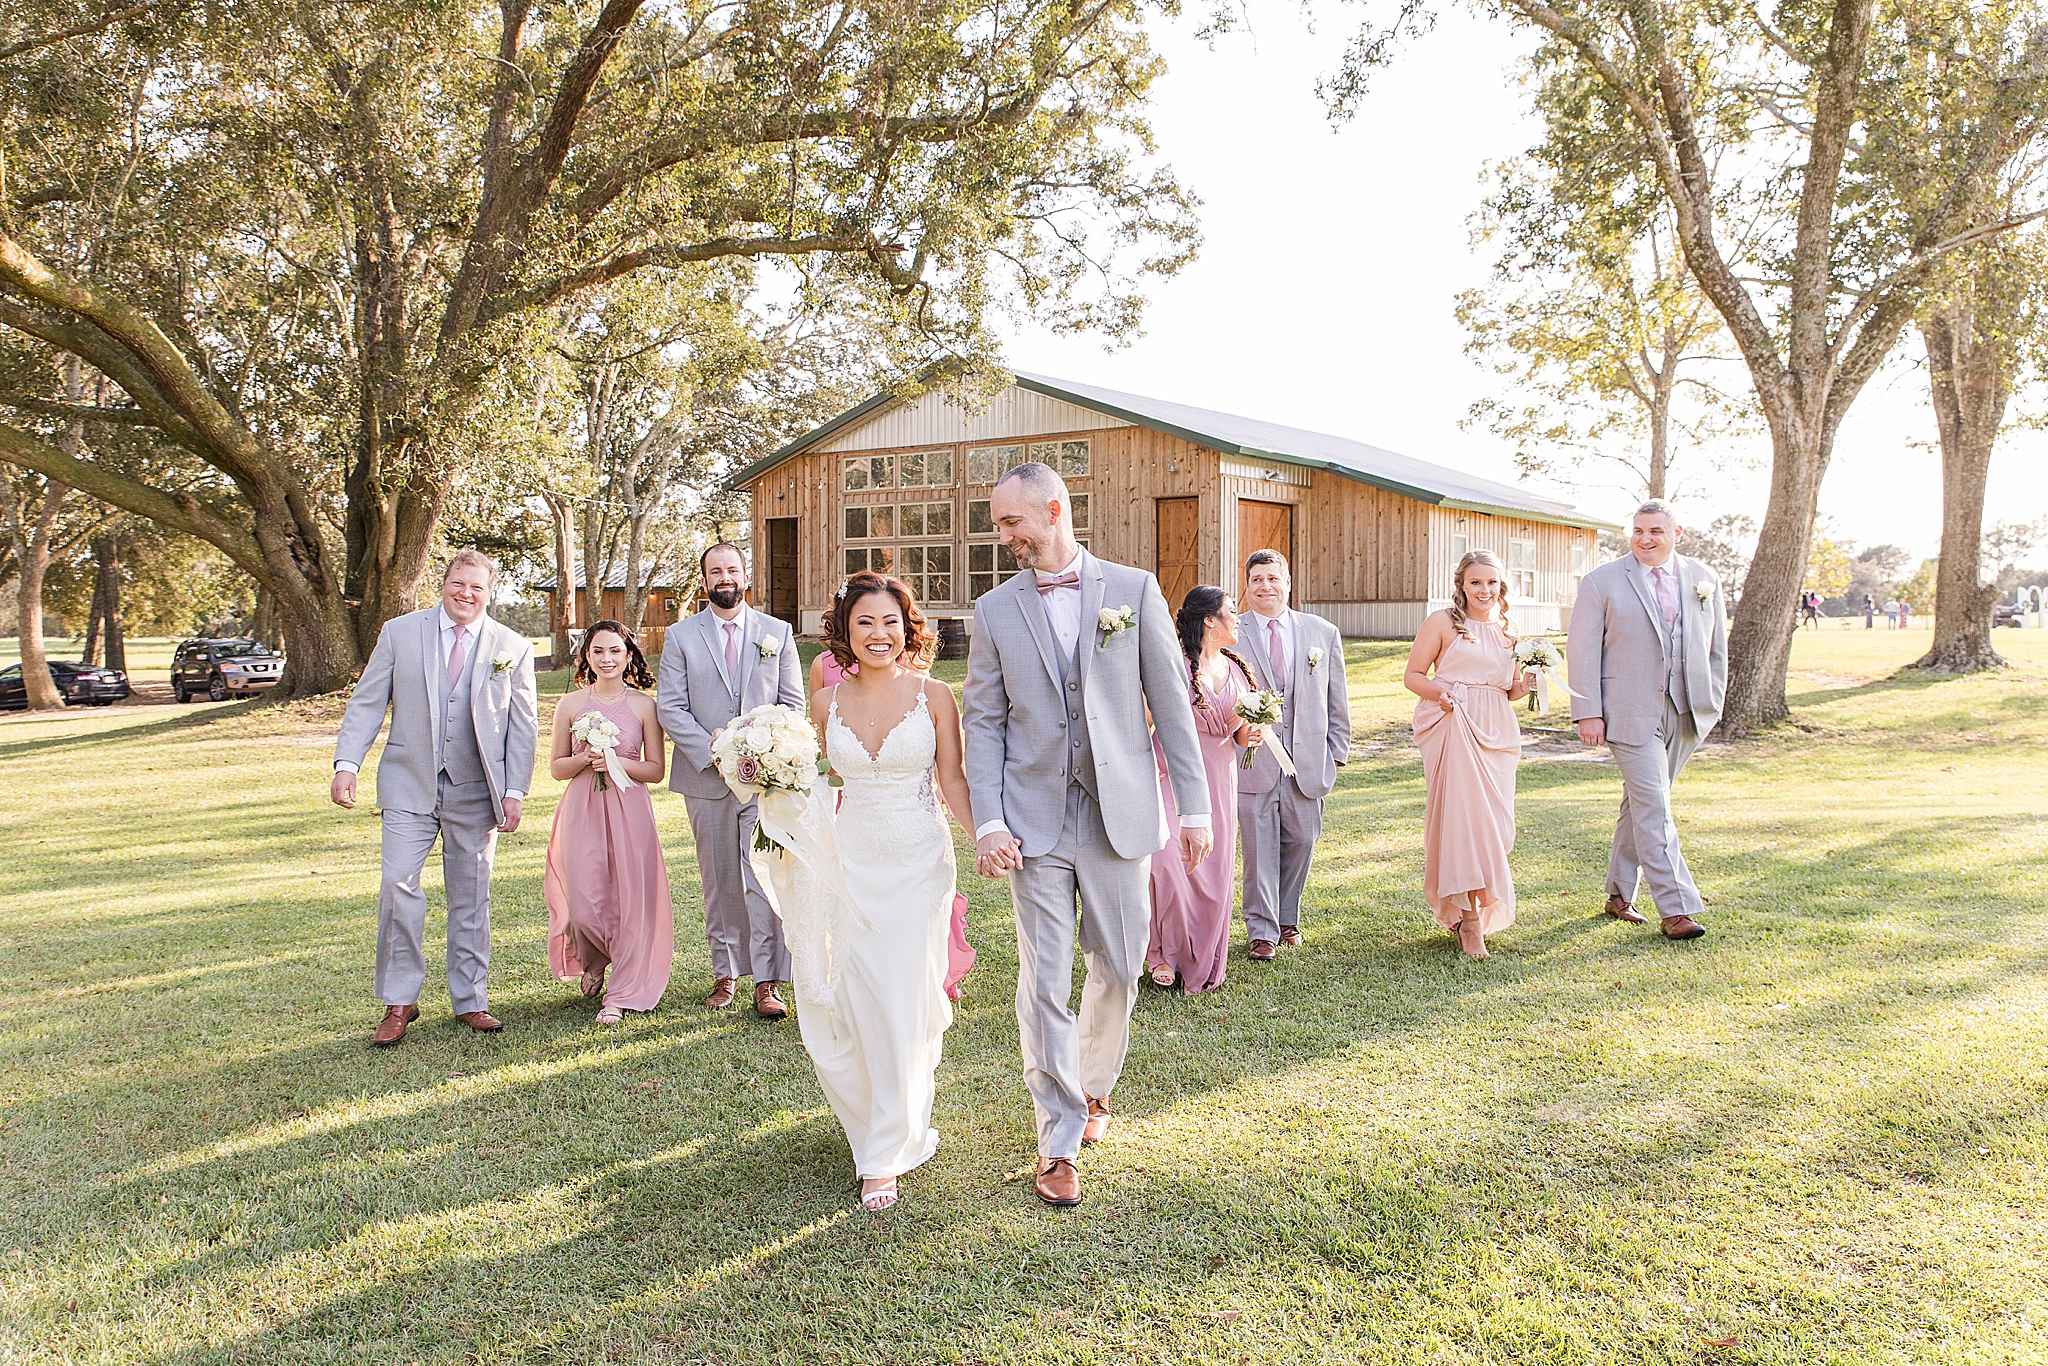 bride and groom hold hands walking with wedding party